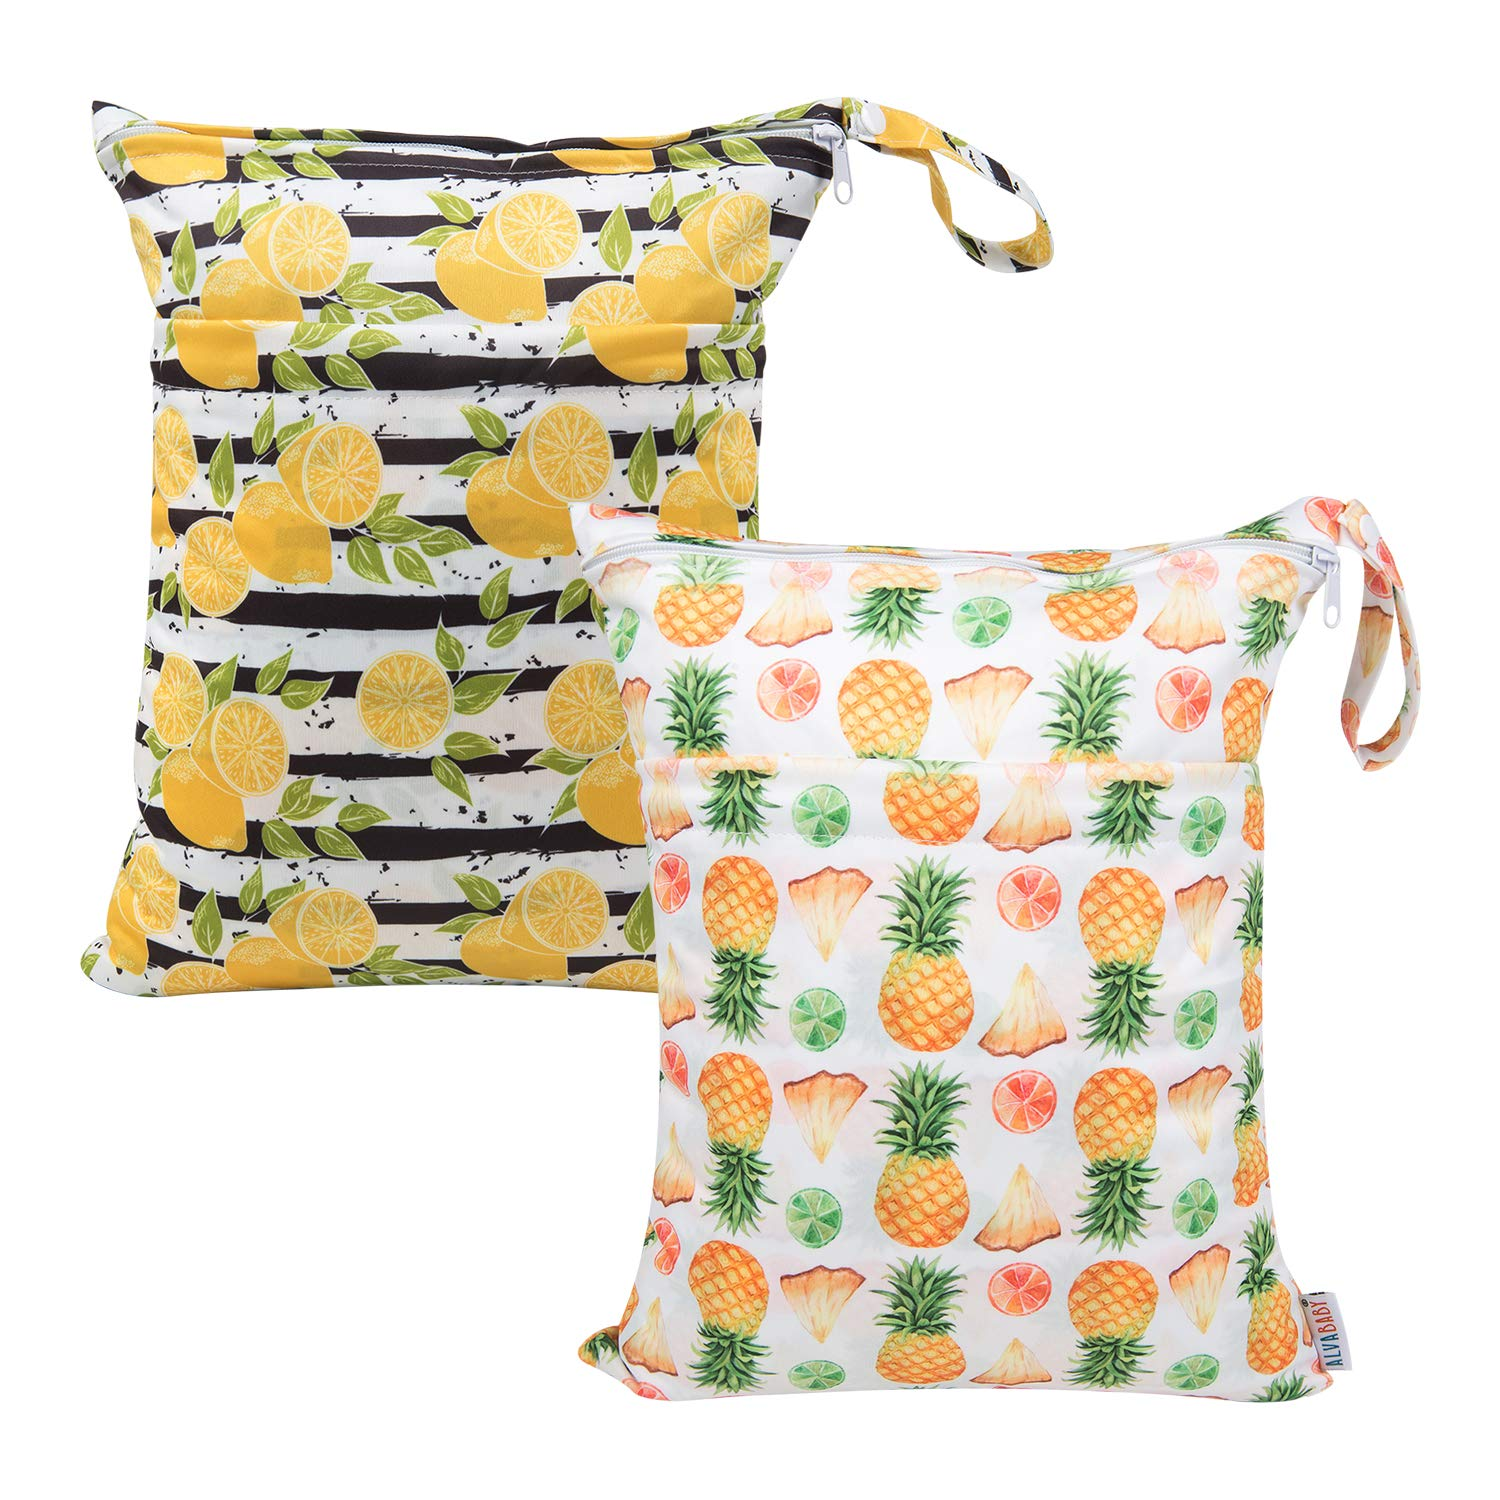 ALVABABY Cloth Diaper Wet Dry Bags Reusable with Two Zippered Pockets Travel Beach Pool Daycare Soiled Baby Items Yoga Gym Bag For Swimsuits Or Wet Clothes 2 Pack Setting Gift L-39YX25-CA